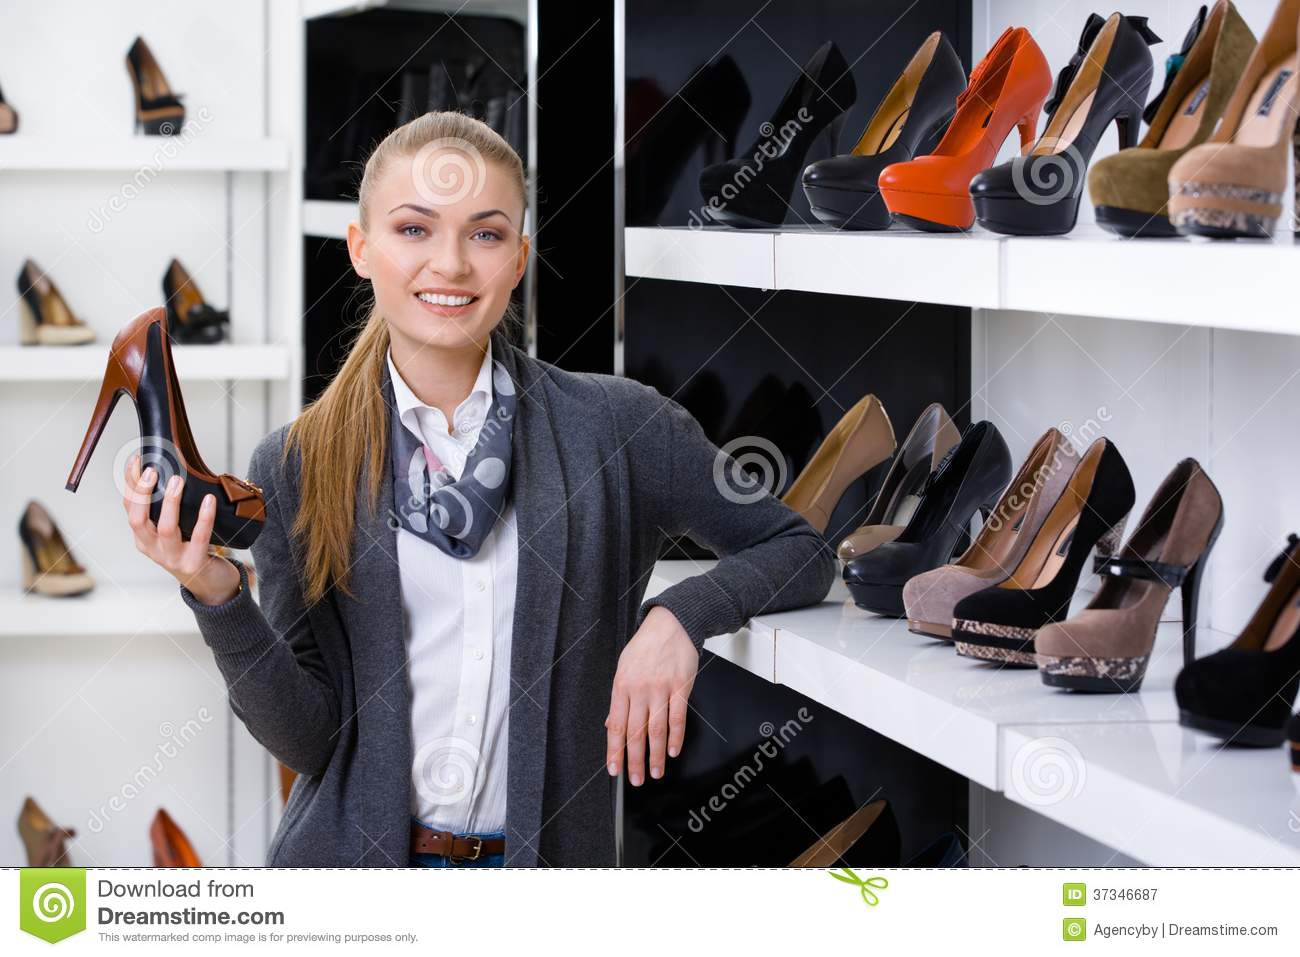 Woman with shoe in hand chooses high heeled shoes